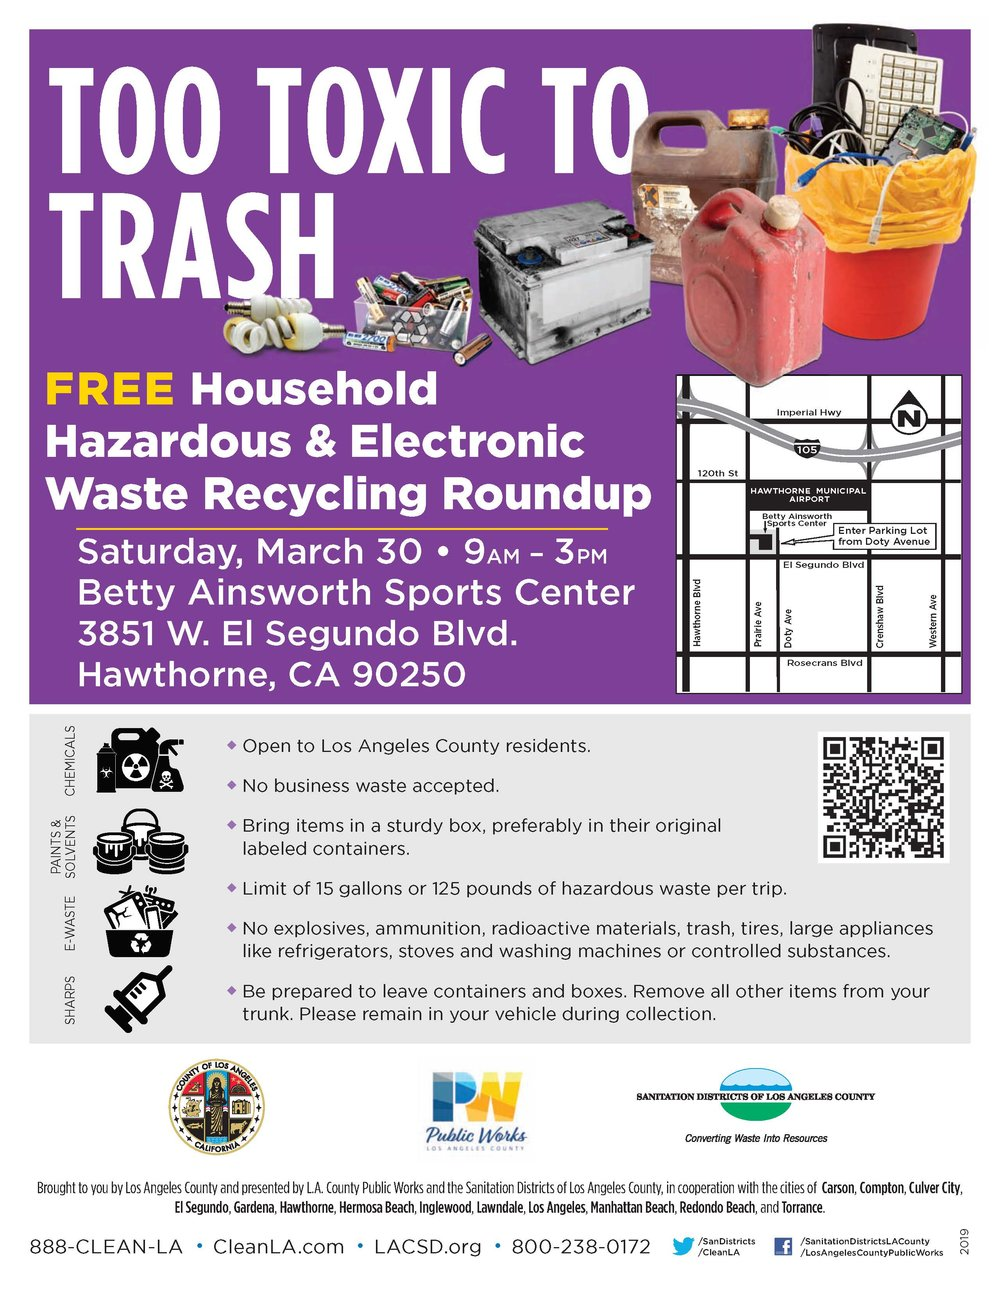 Household Hazardous & Electronic Waste Recycling Roundup